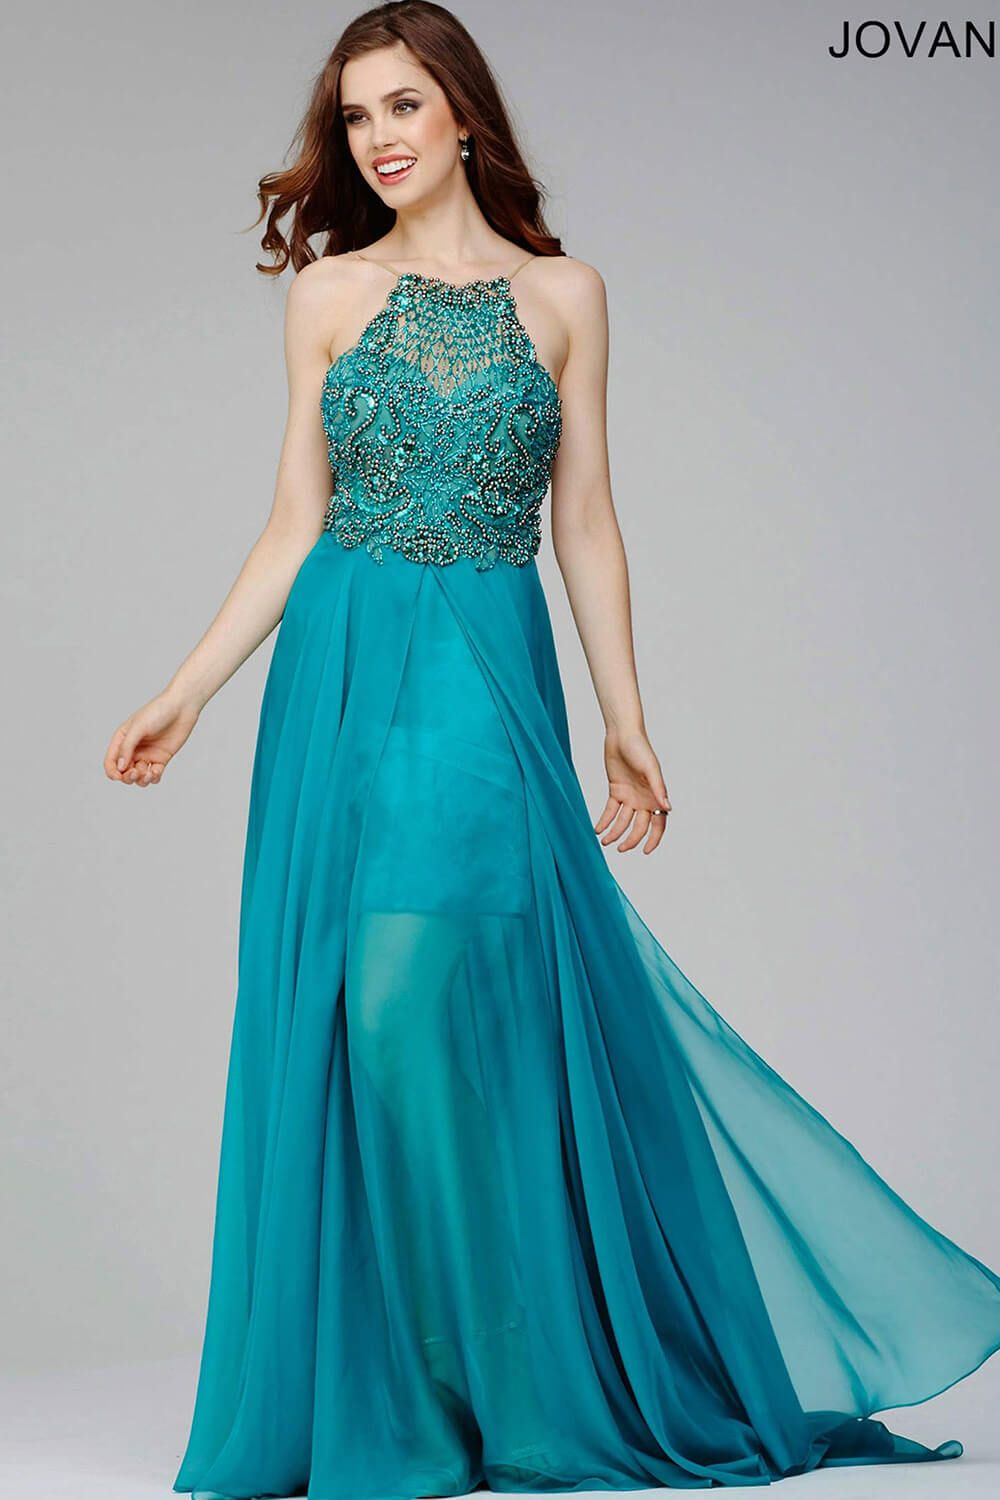 Chiffon beaded top with open low back halter dress | Prom ...